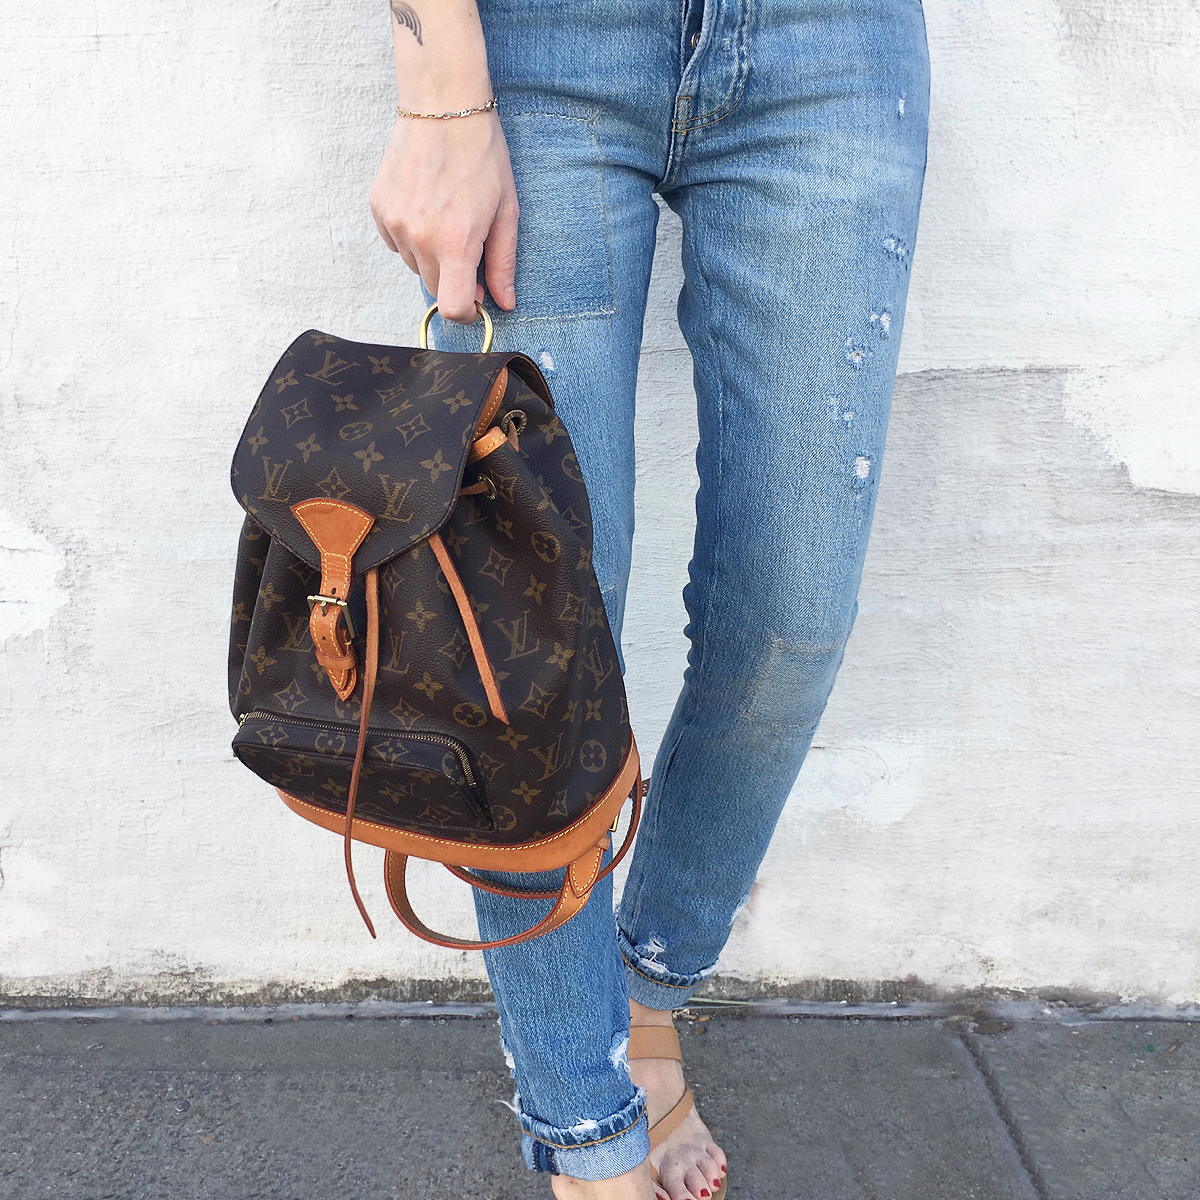 Louis Vuitton backpack and ripped jeans